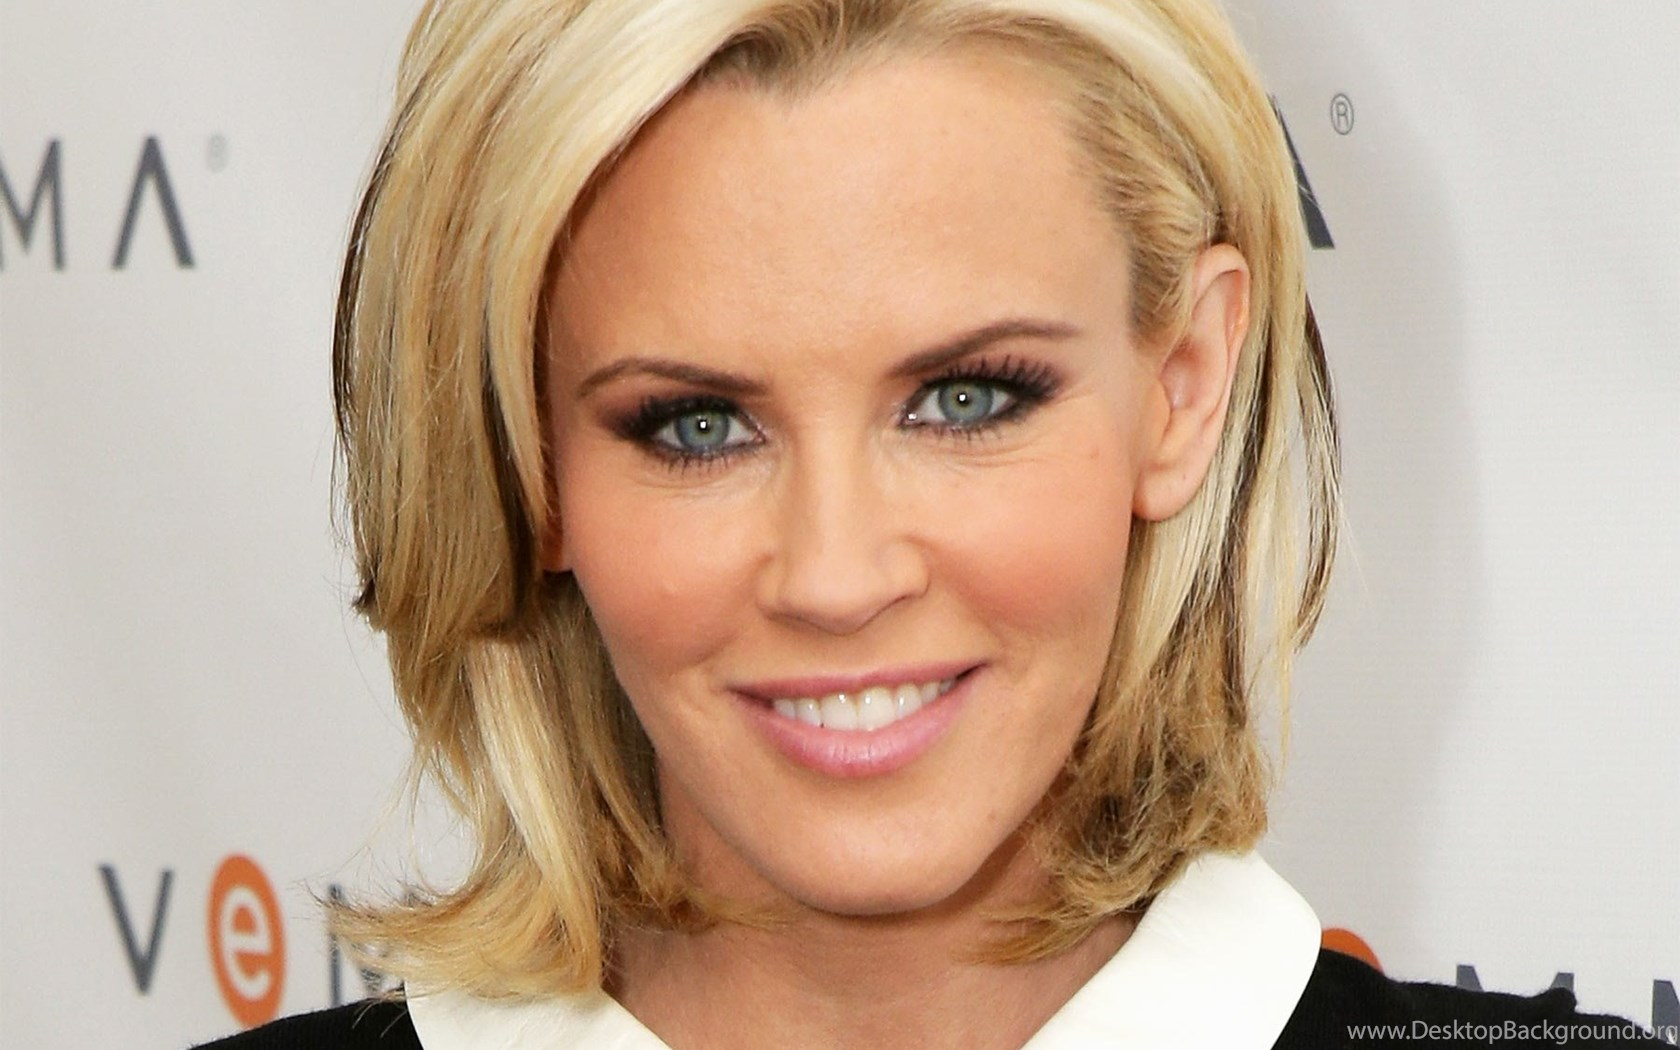 Hd Jenny Mccarthy Wallpapers And Photos Desktop Background